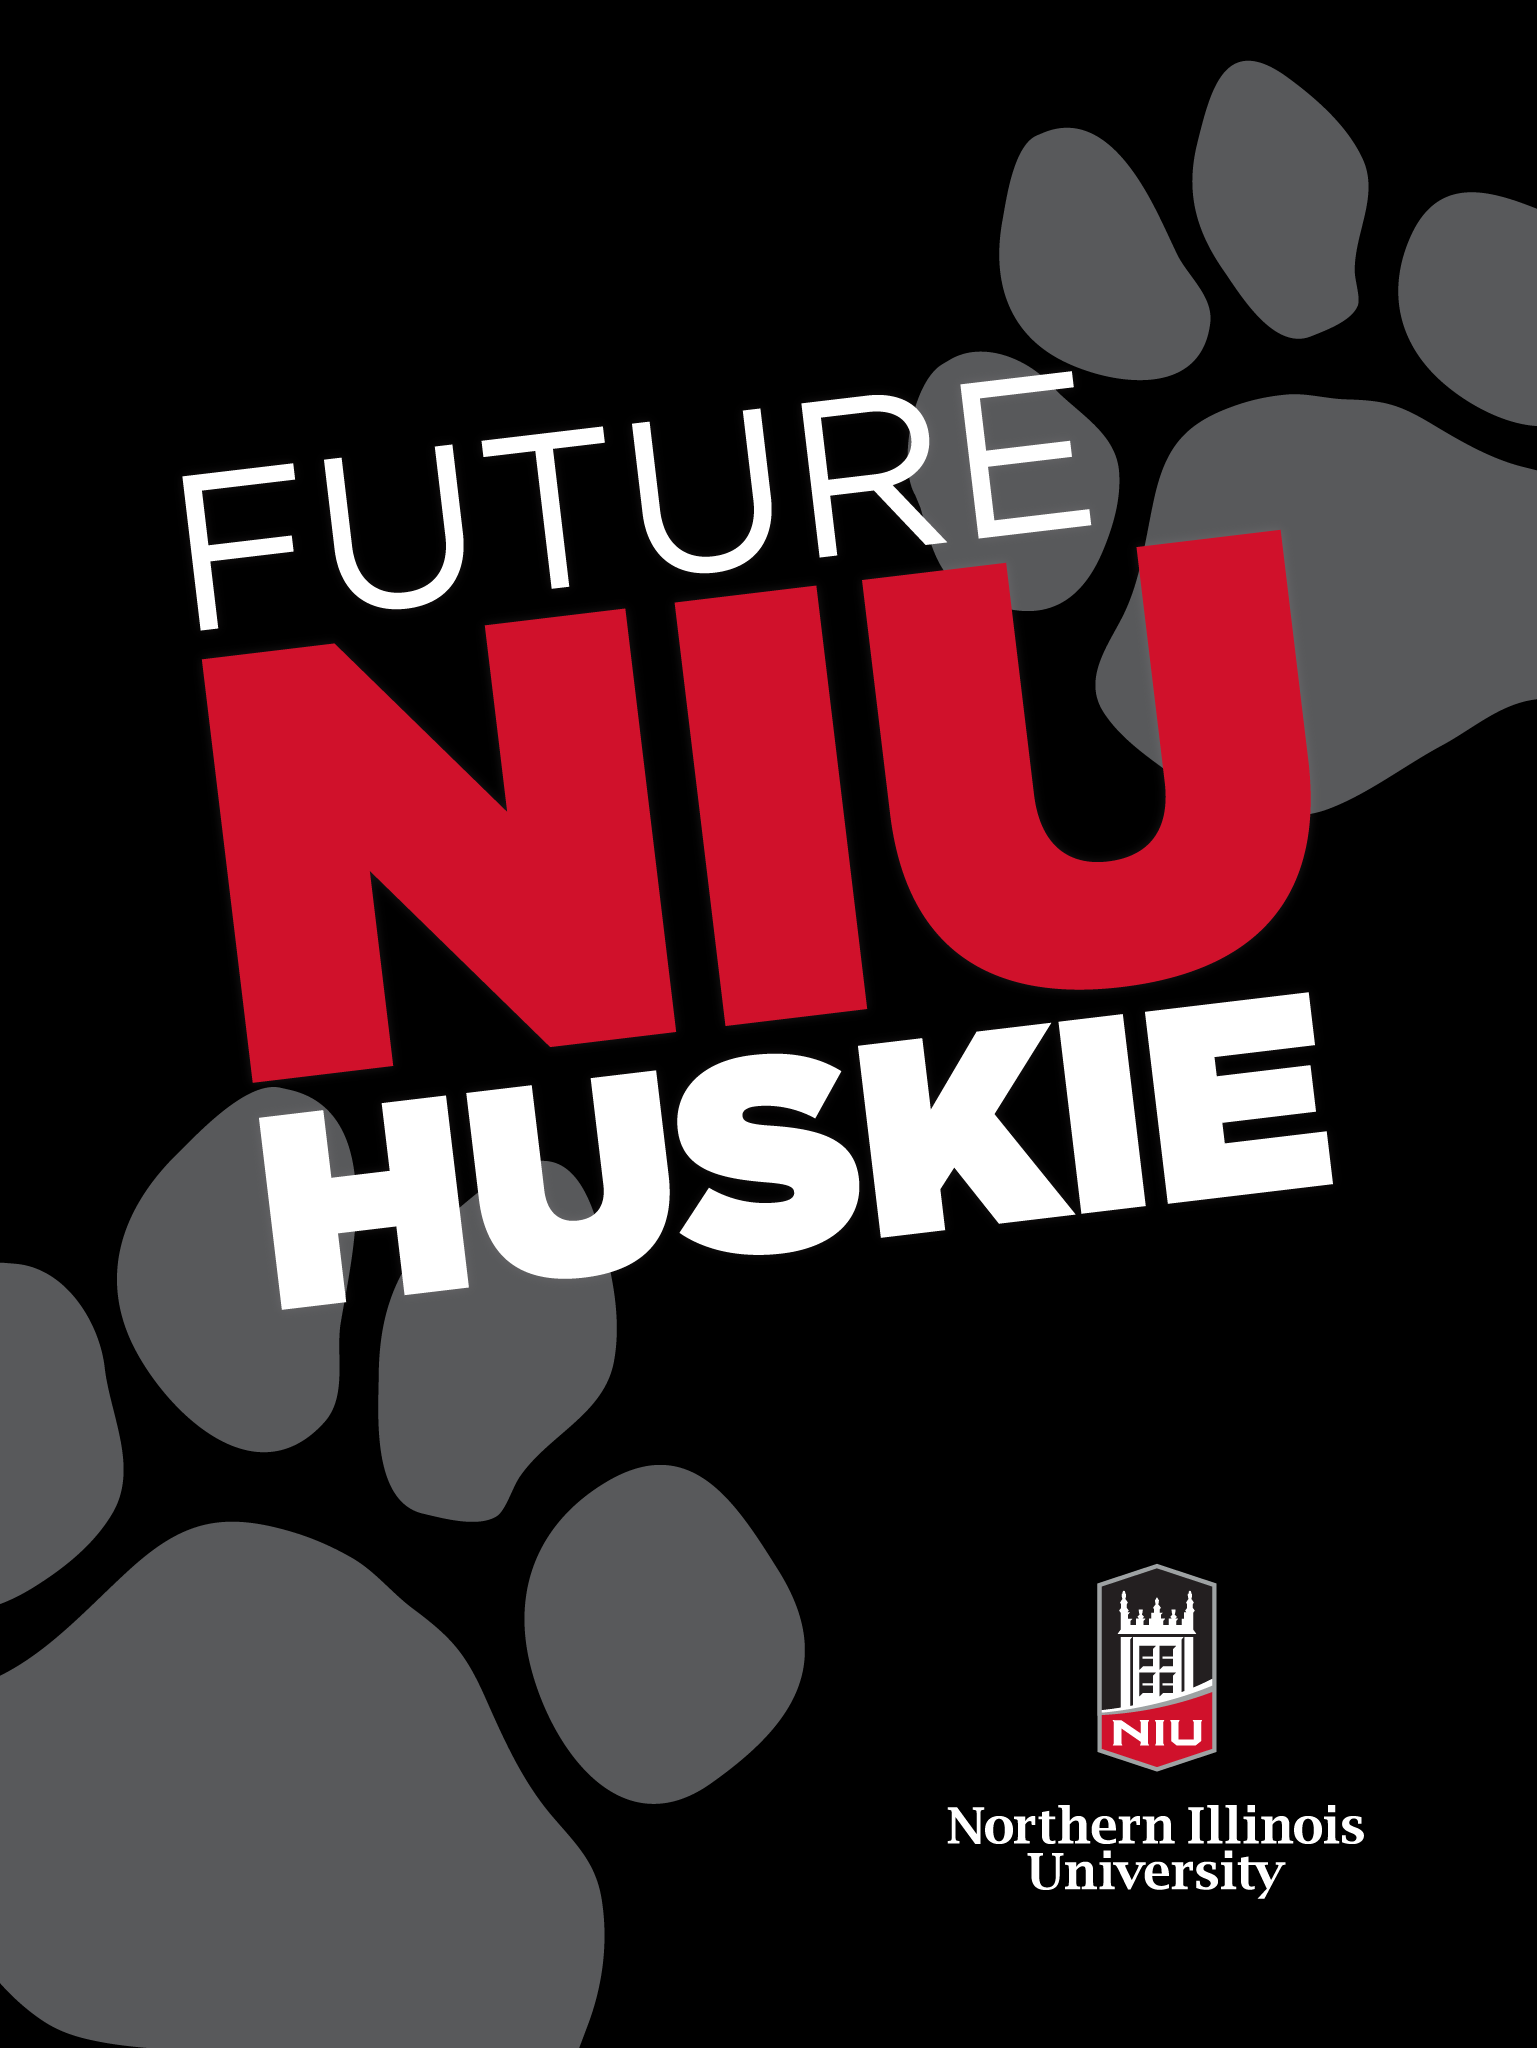 Future Huskie - Black for iPad